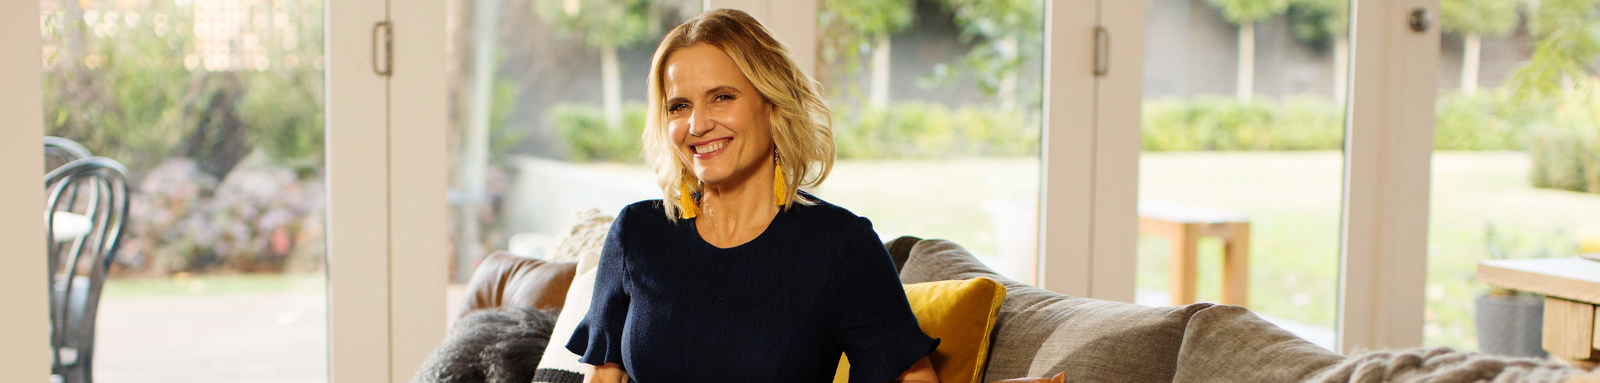 Shaynna Blaze sitting on couch